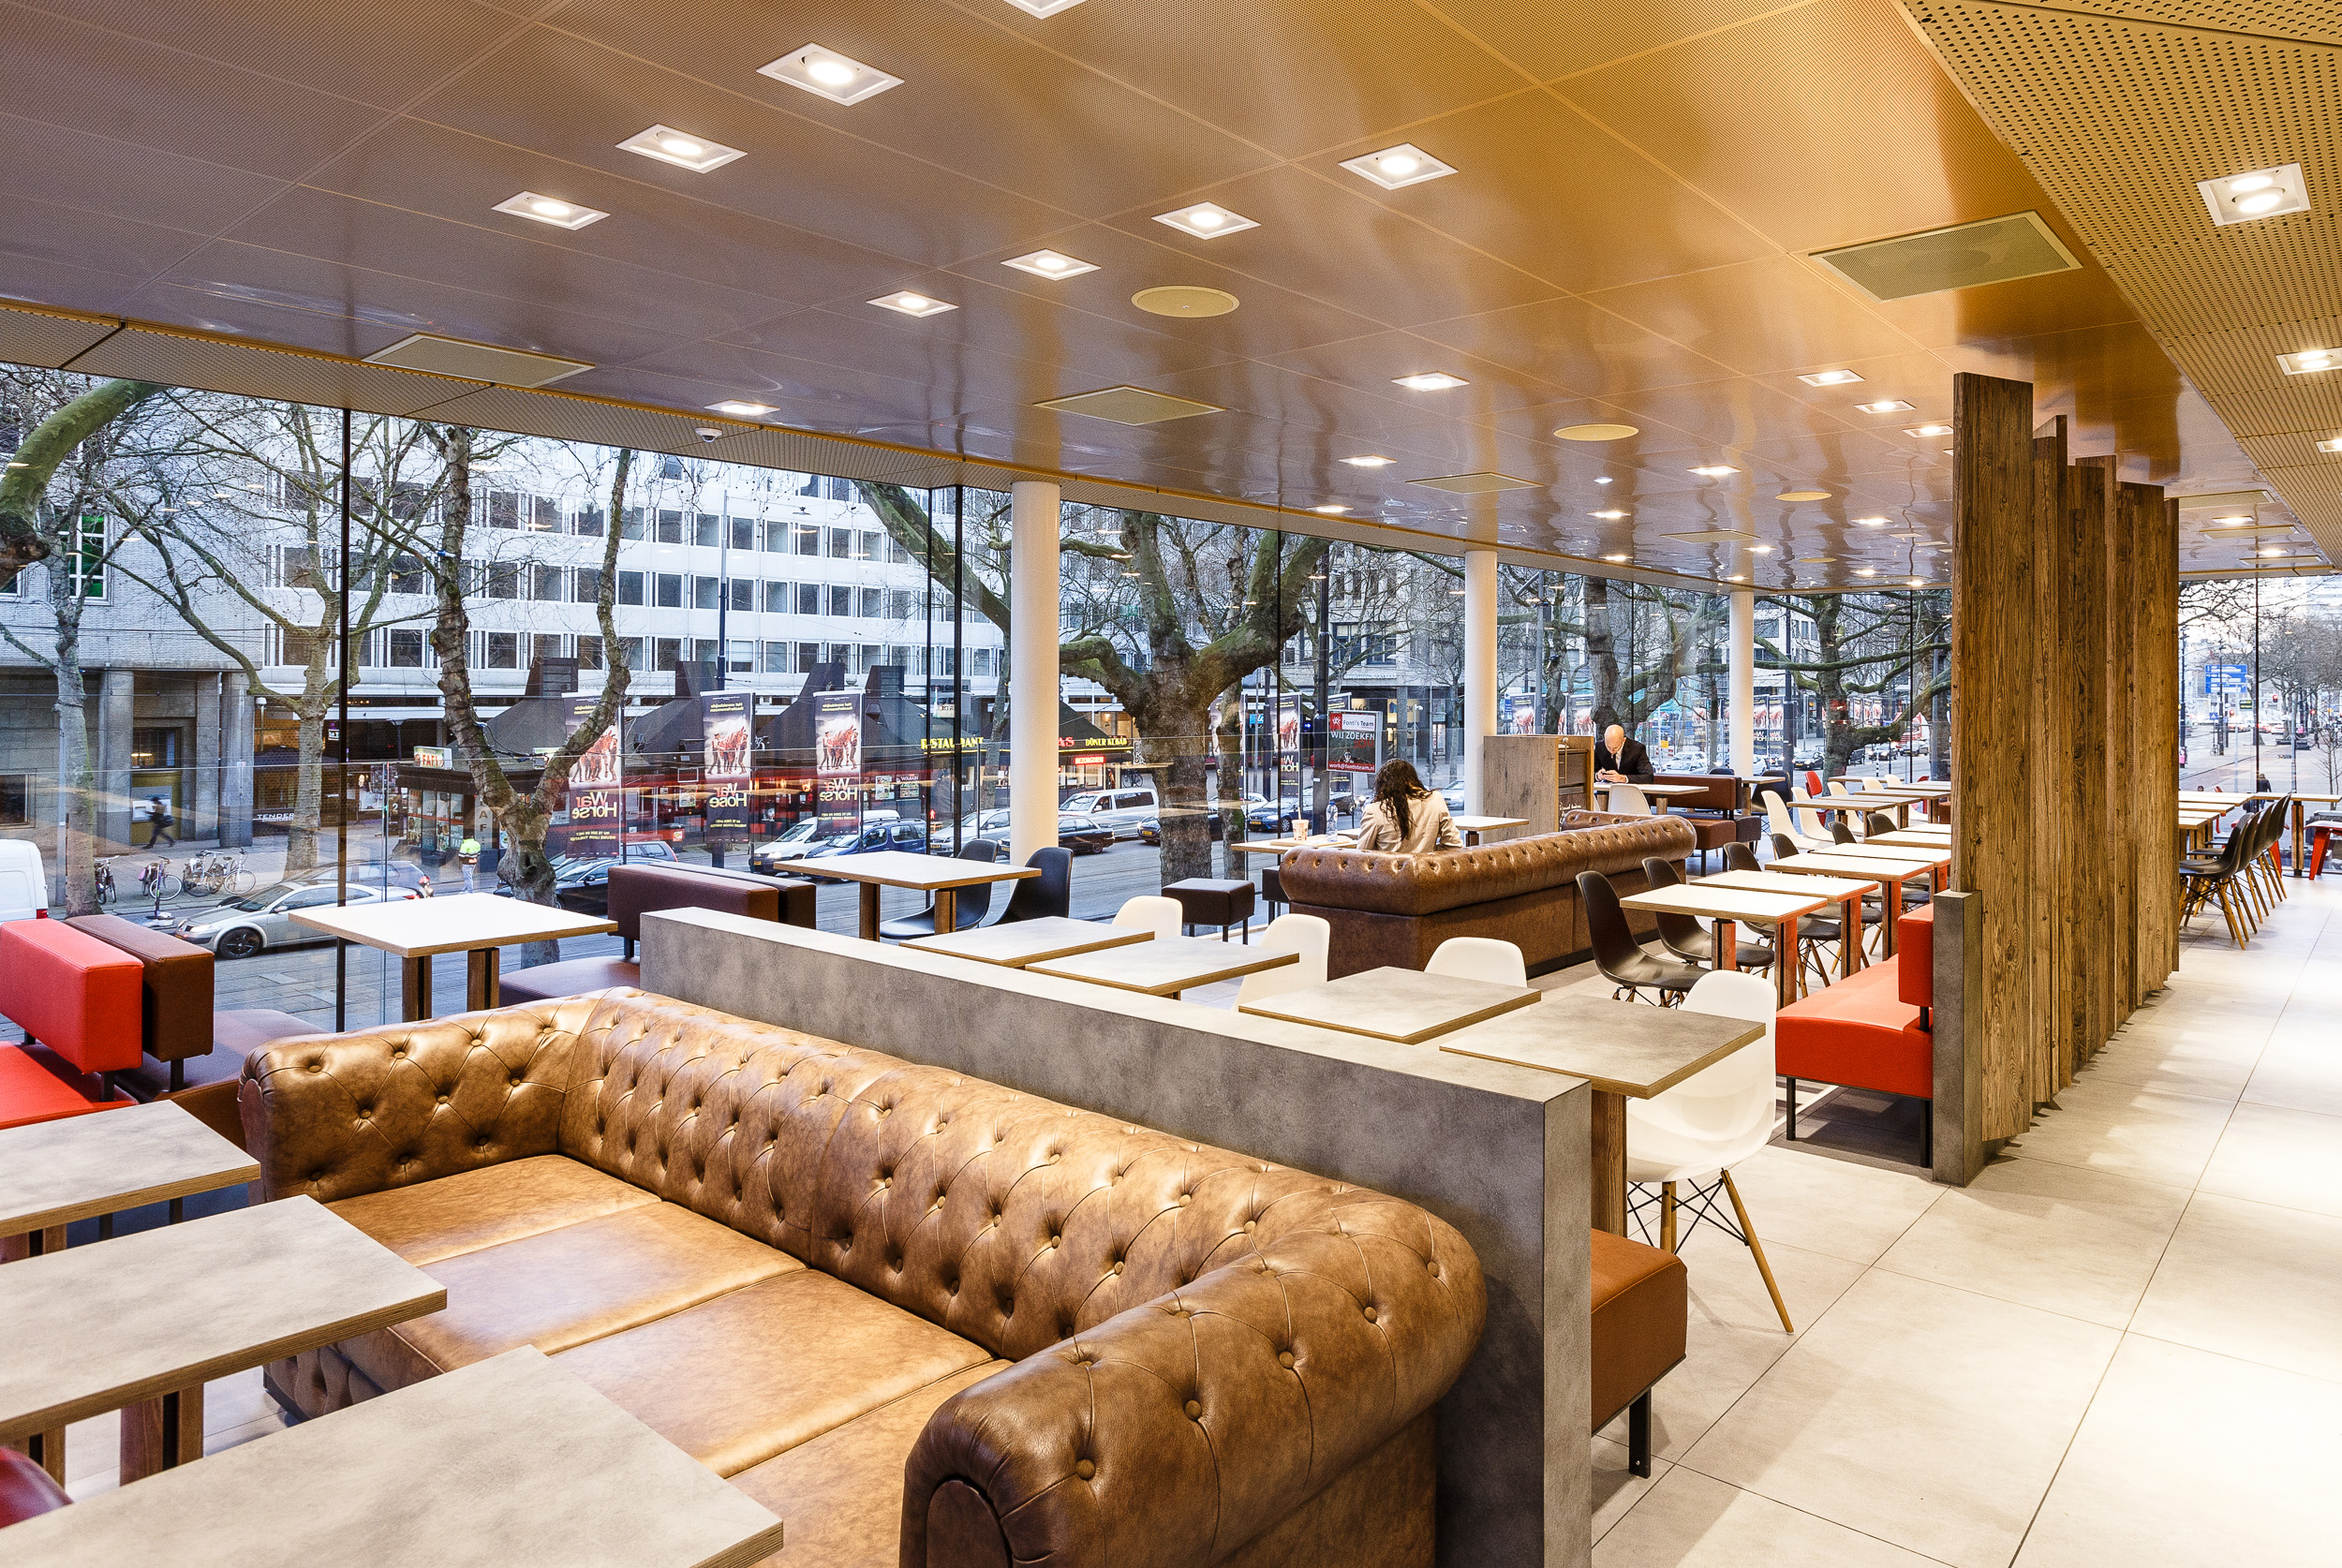 20150327 McDonalds Coolsingel interieur 02.jpg